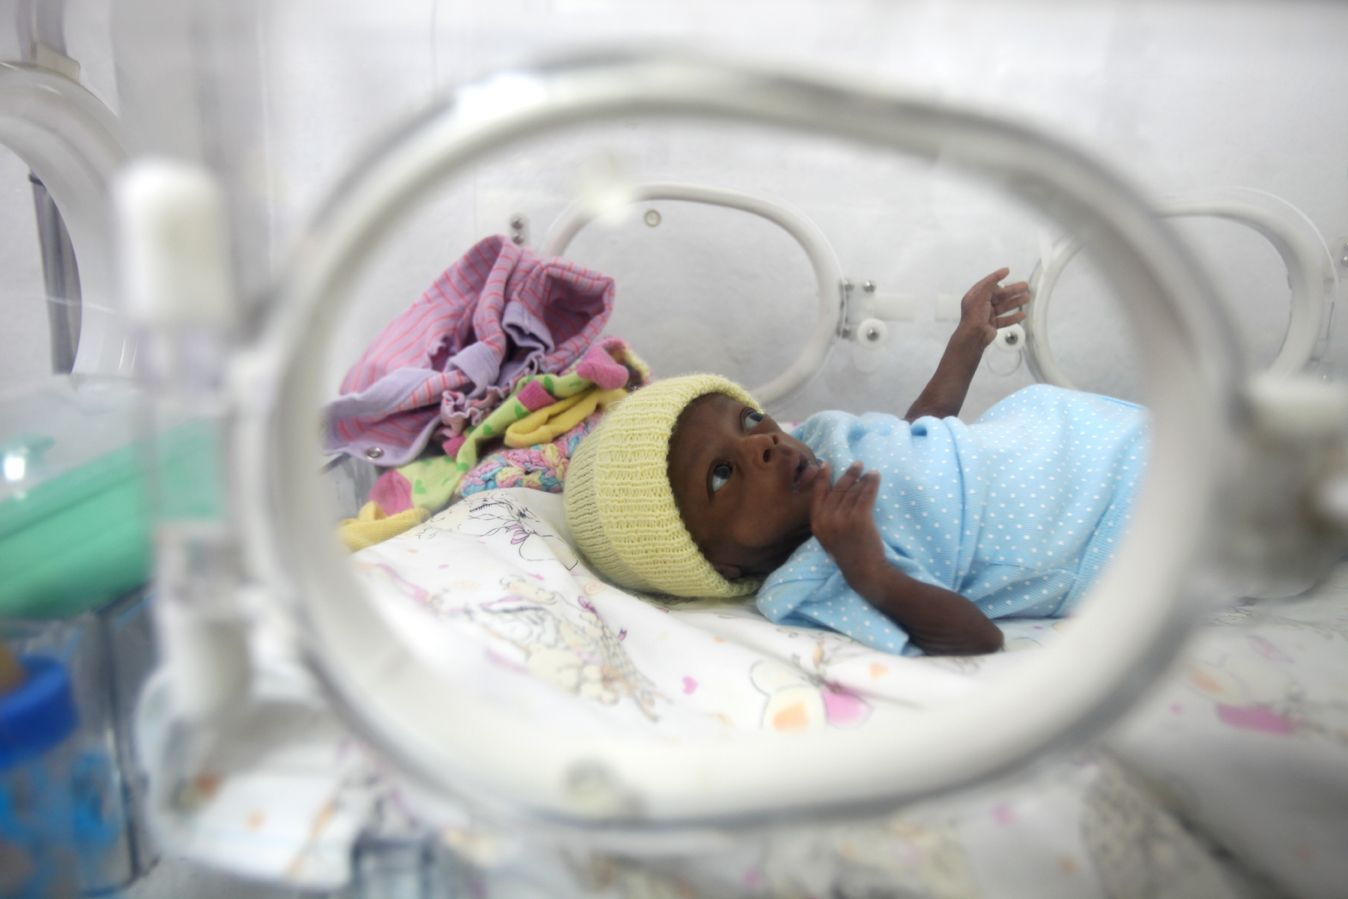 March 13 A premature baby rests in an incubator within